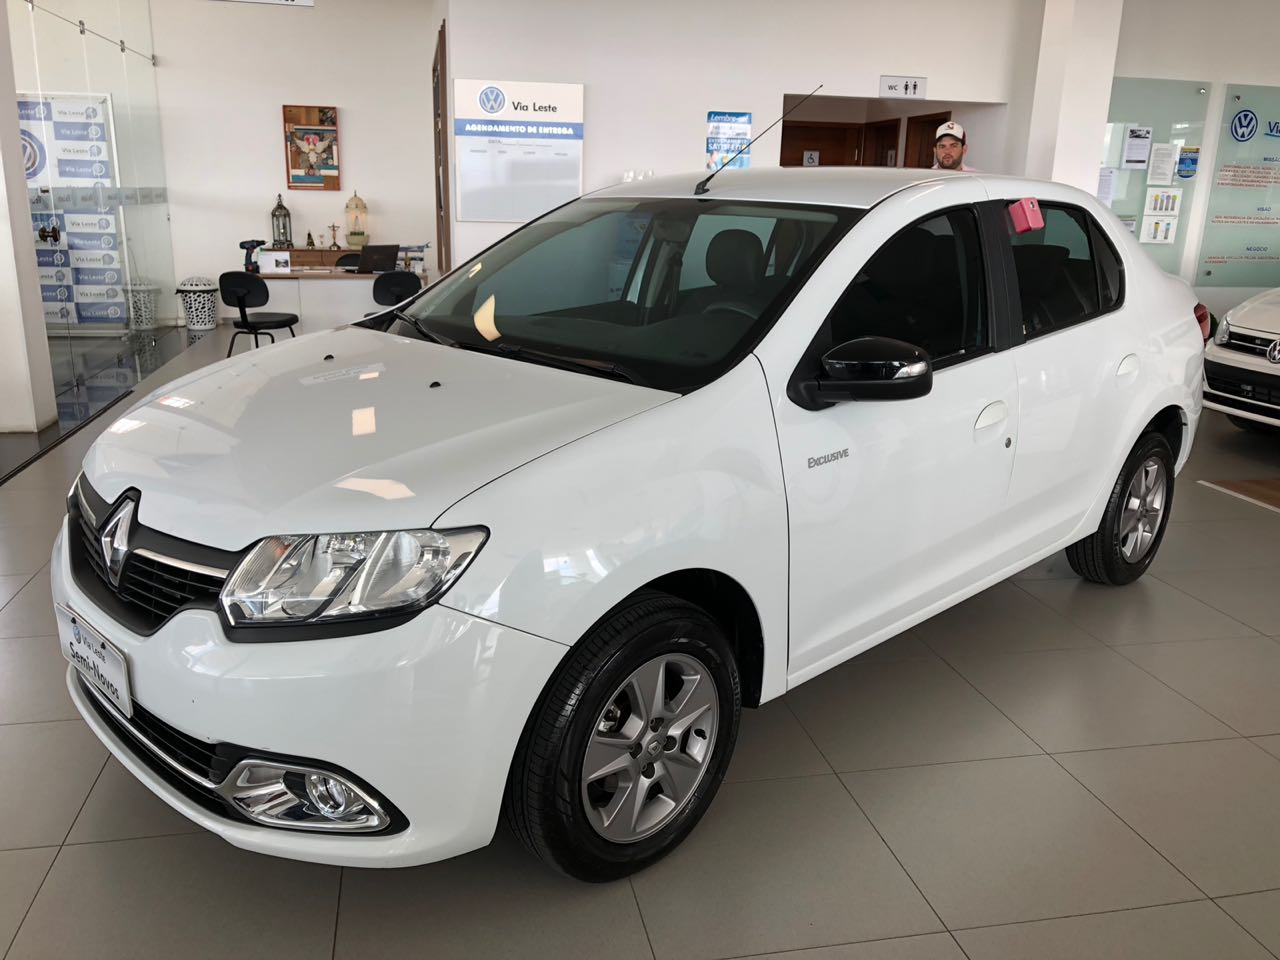 RENAULT LOGAN EXCLUSIVE<br>R$ 34.900,00